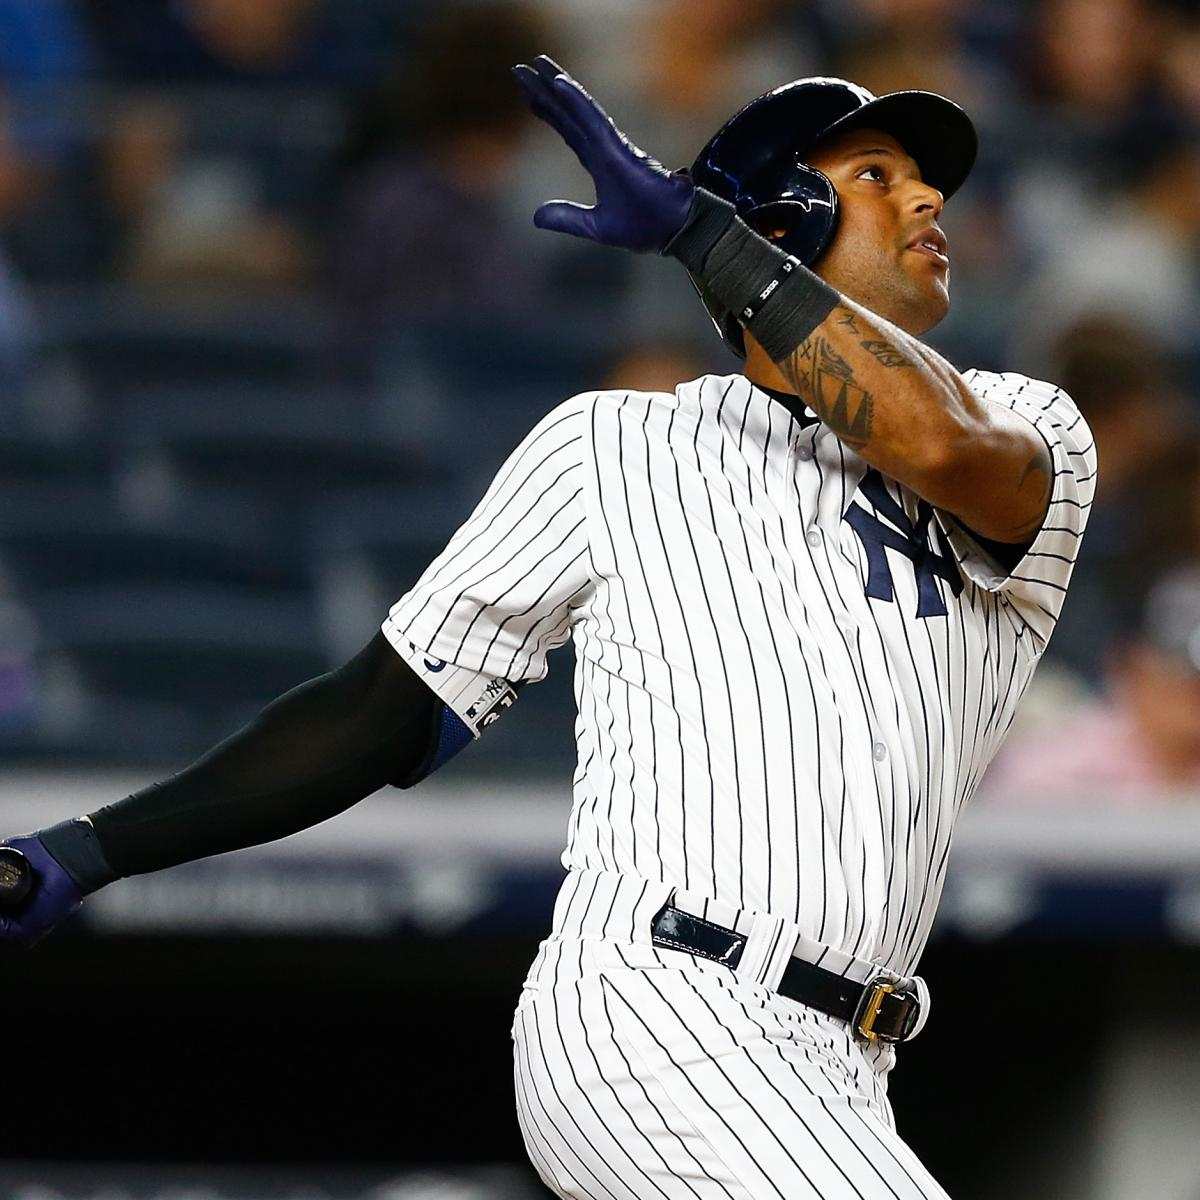 Yankees Become 6th Team in MLB History to Hit 250 Home Runs in Season